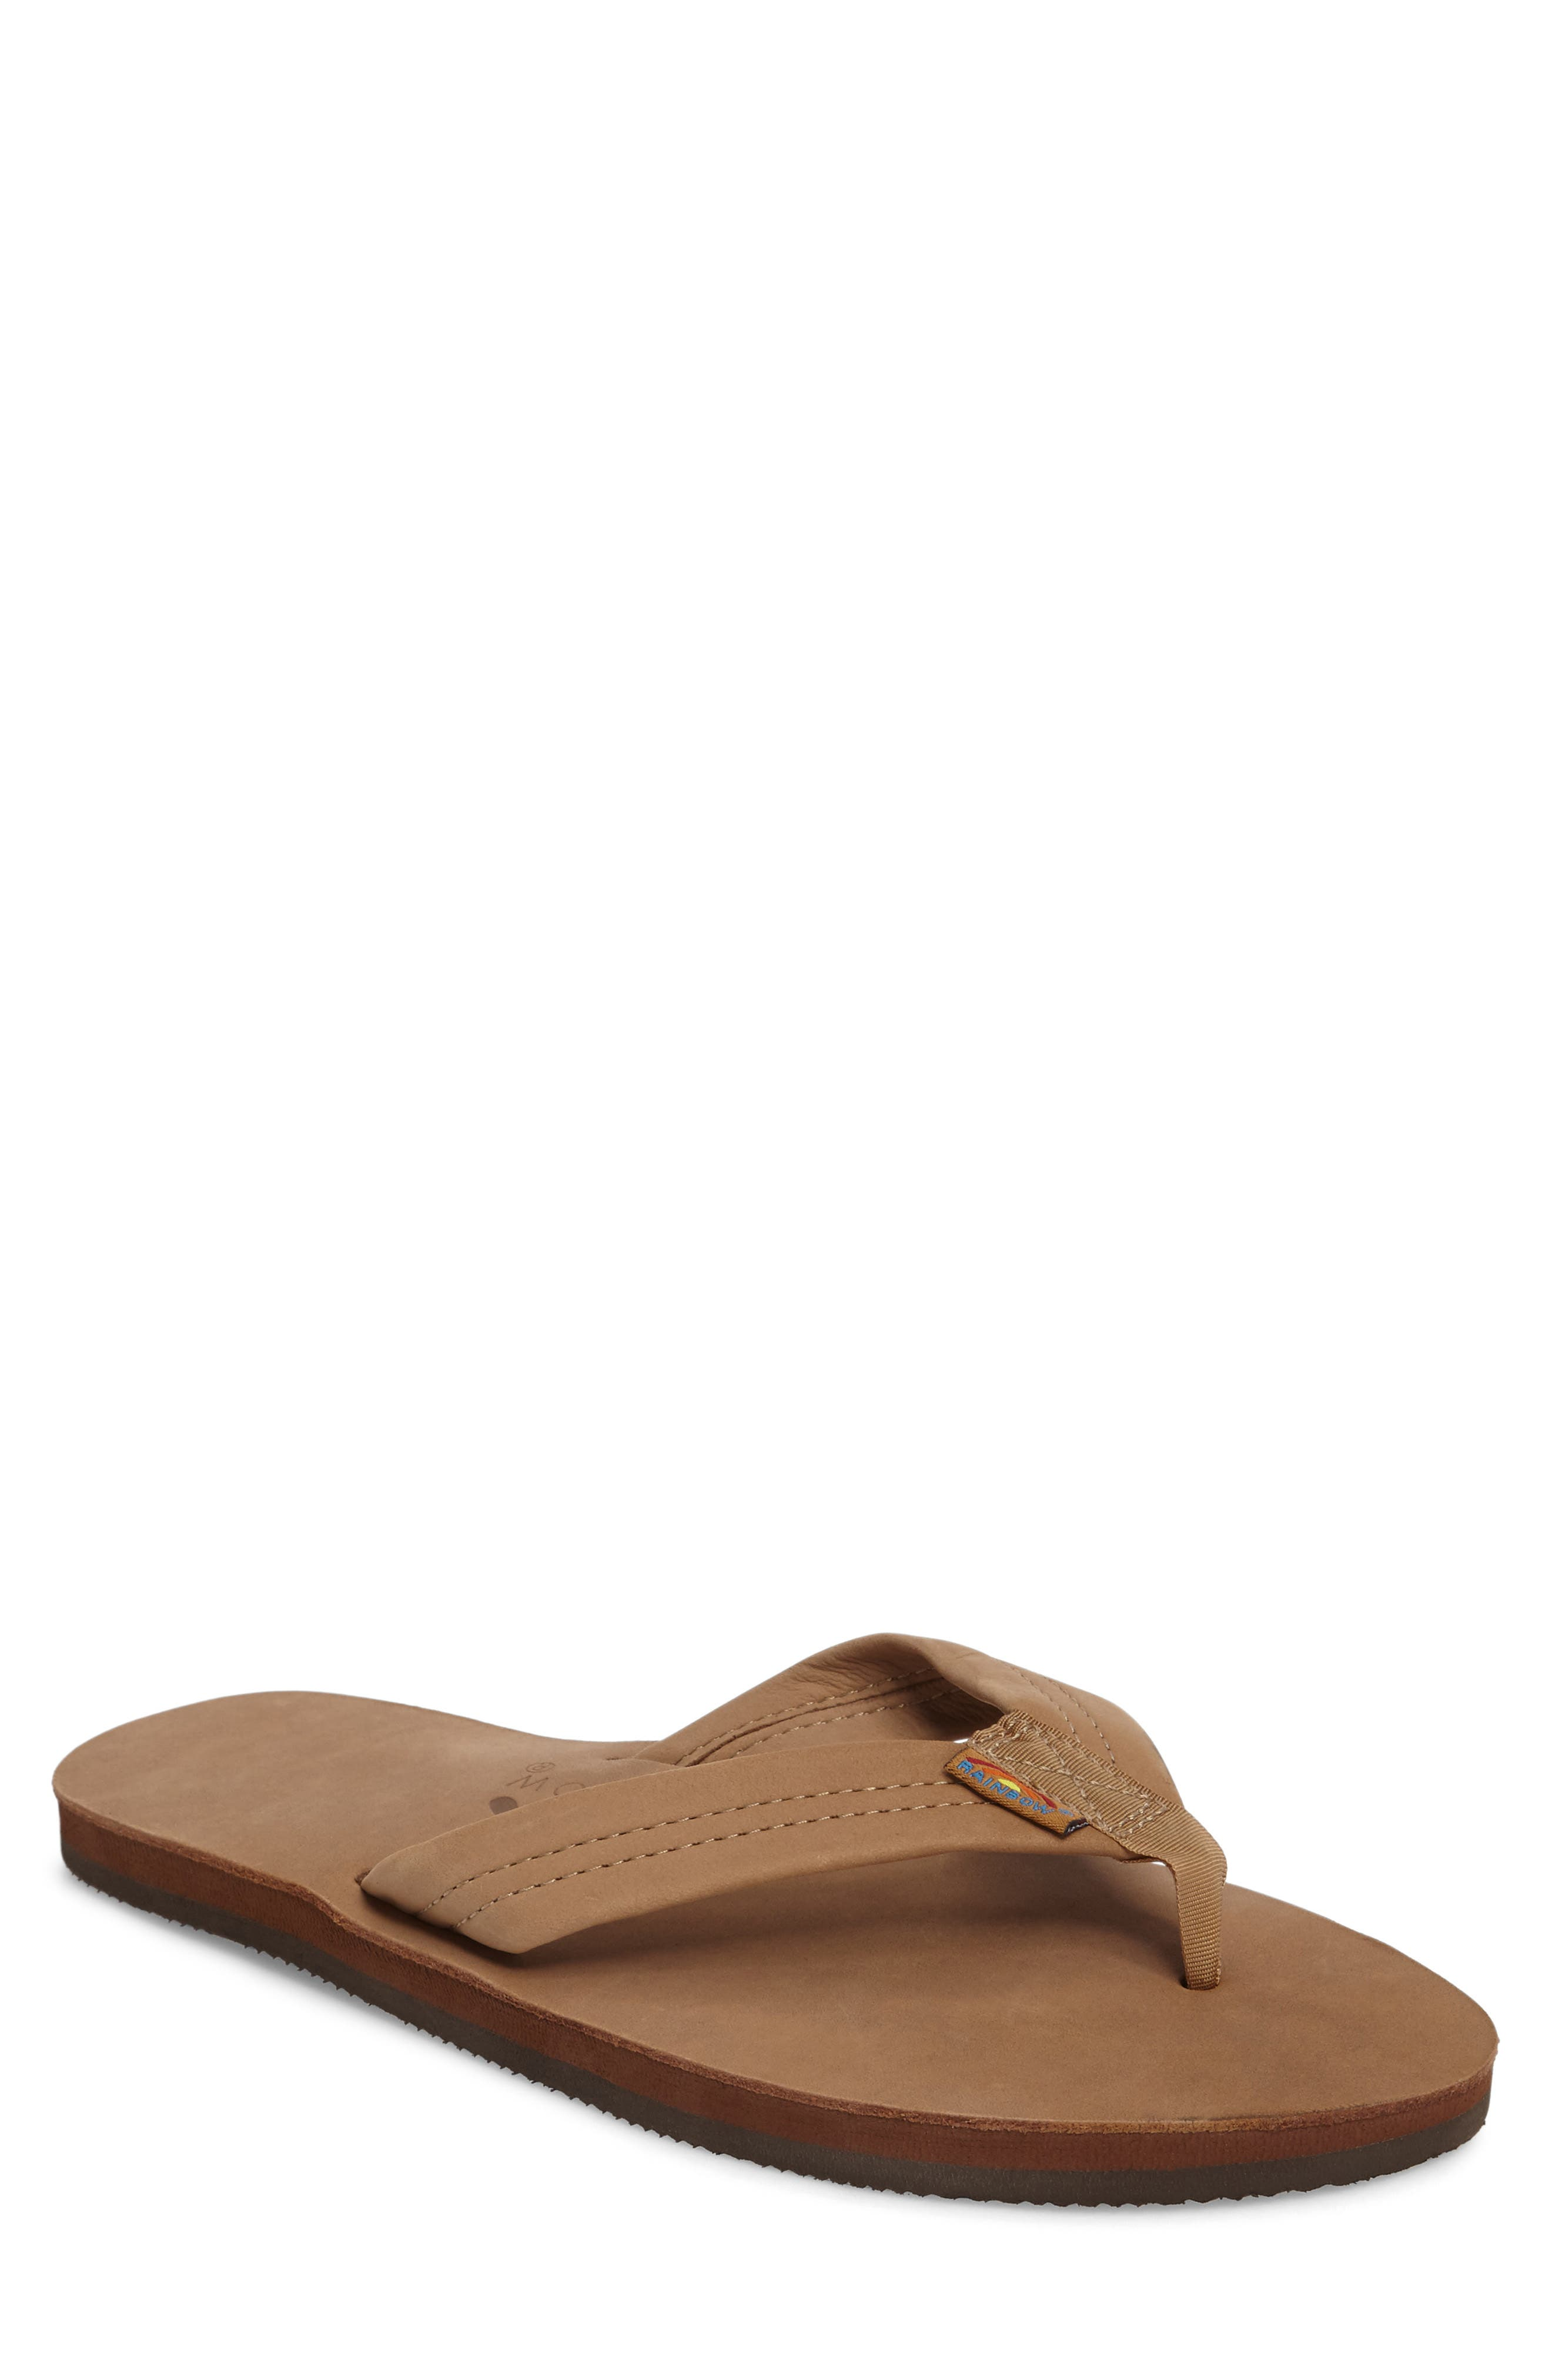 Soft leather straps and a leather footbed ensure cool comfort on a classic flip-flop. Style Name: Rainbow \\\'301Alts\\\' Sandal (Men). Style Number: 156578. Available in stores.